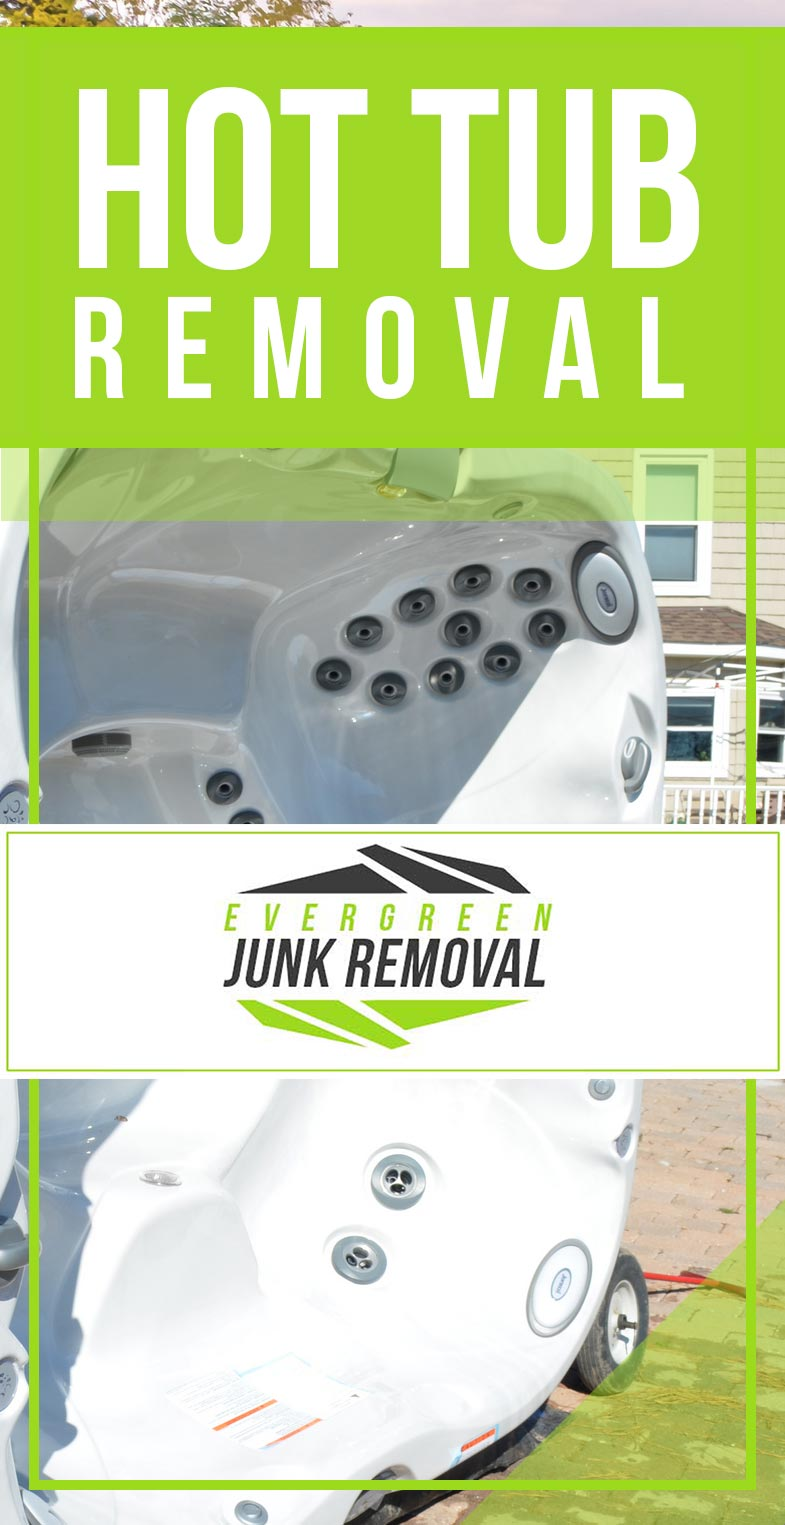 Broomfield Hot Tub Removal